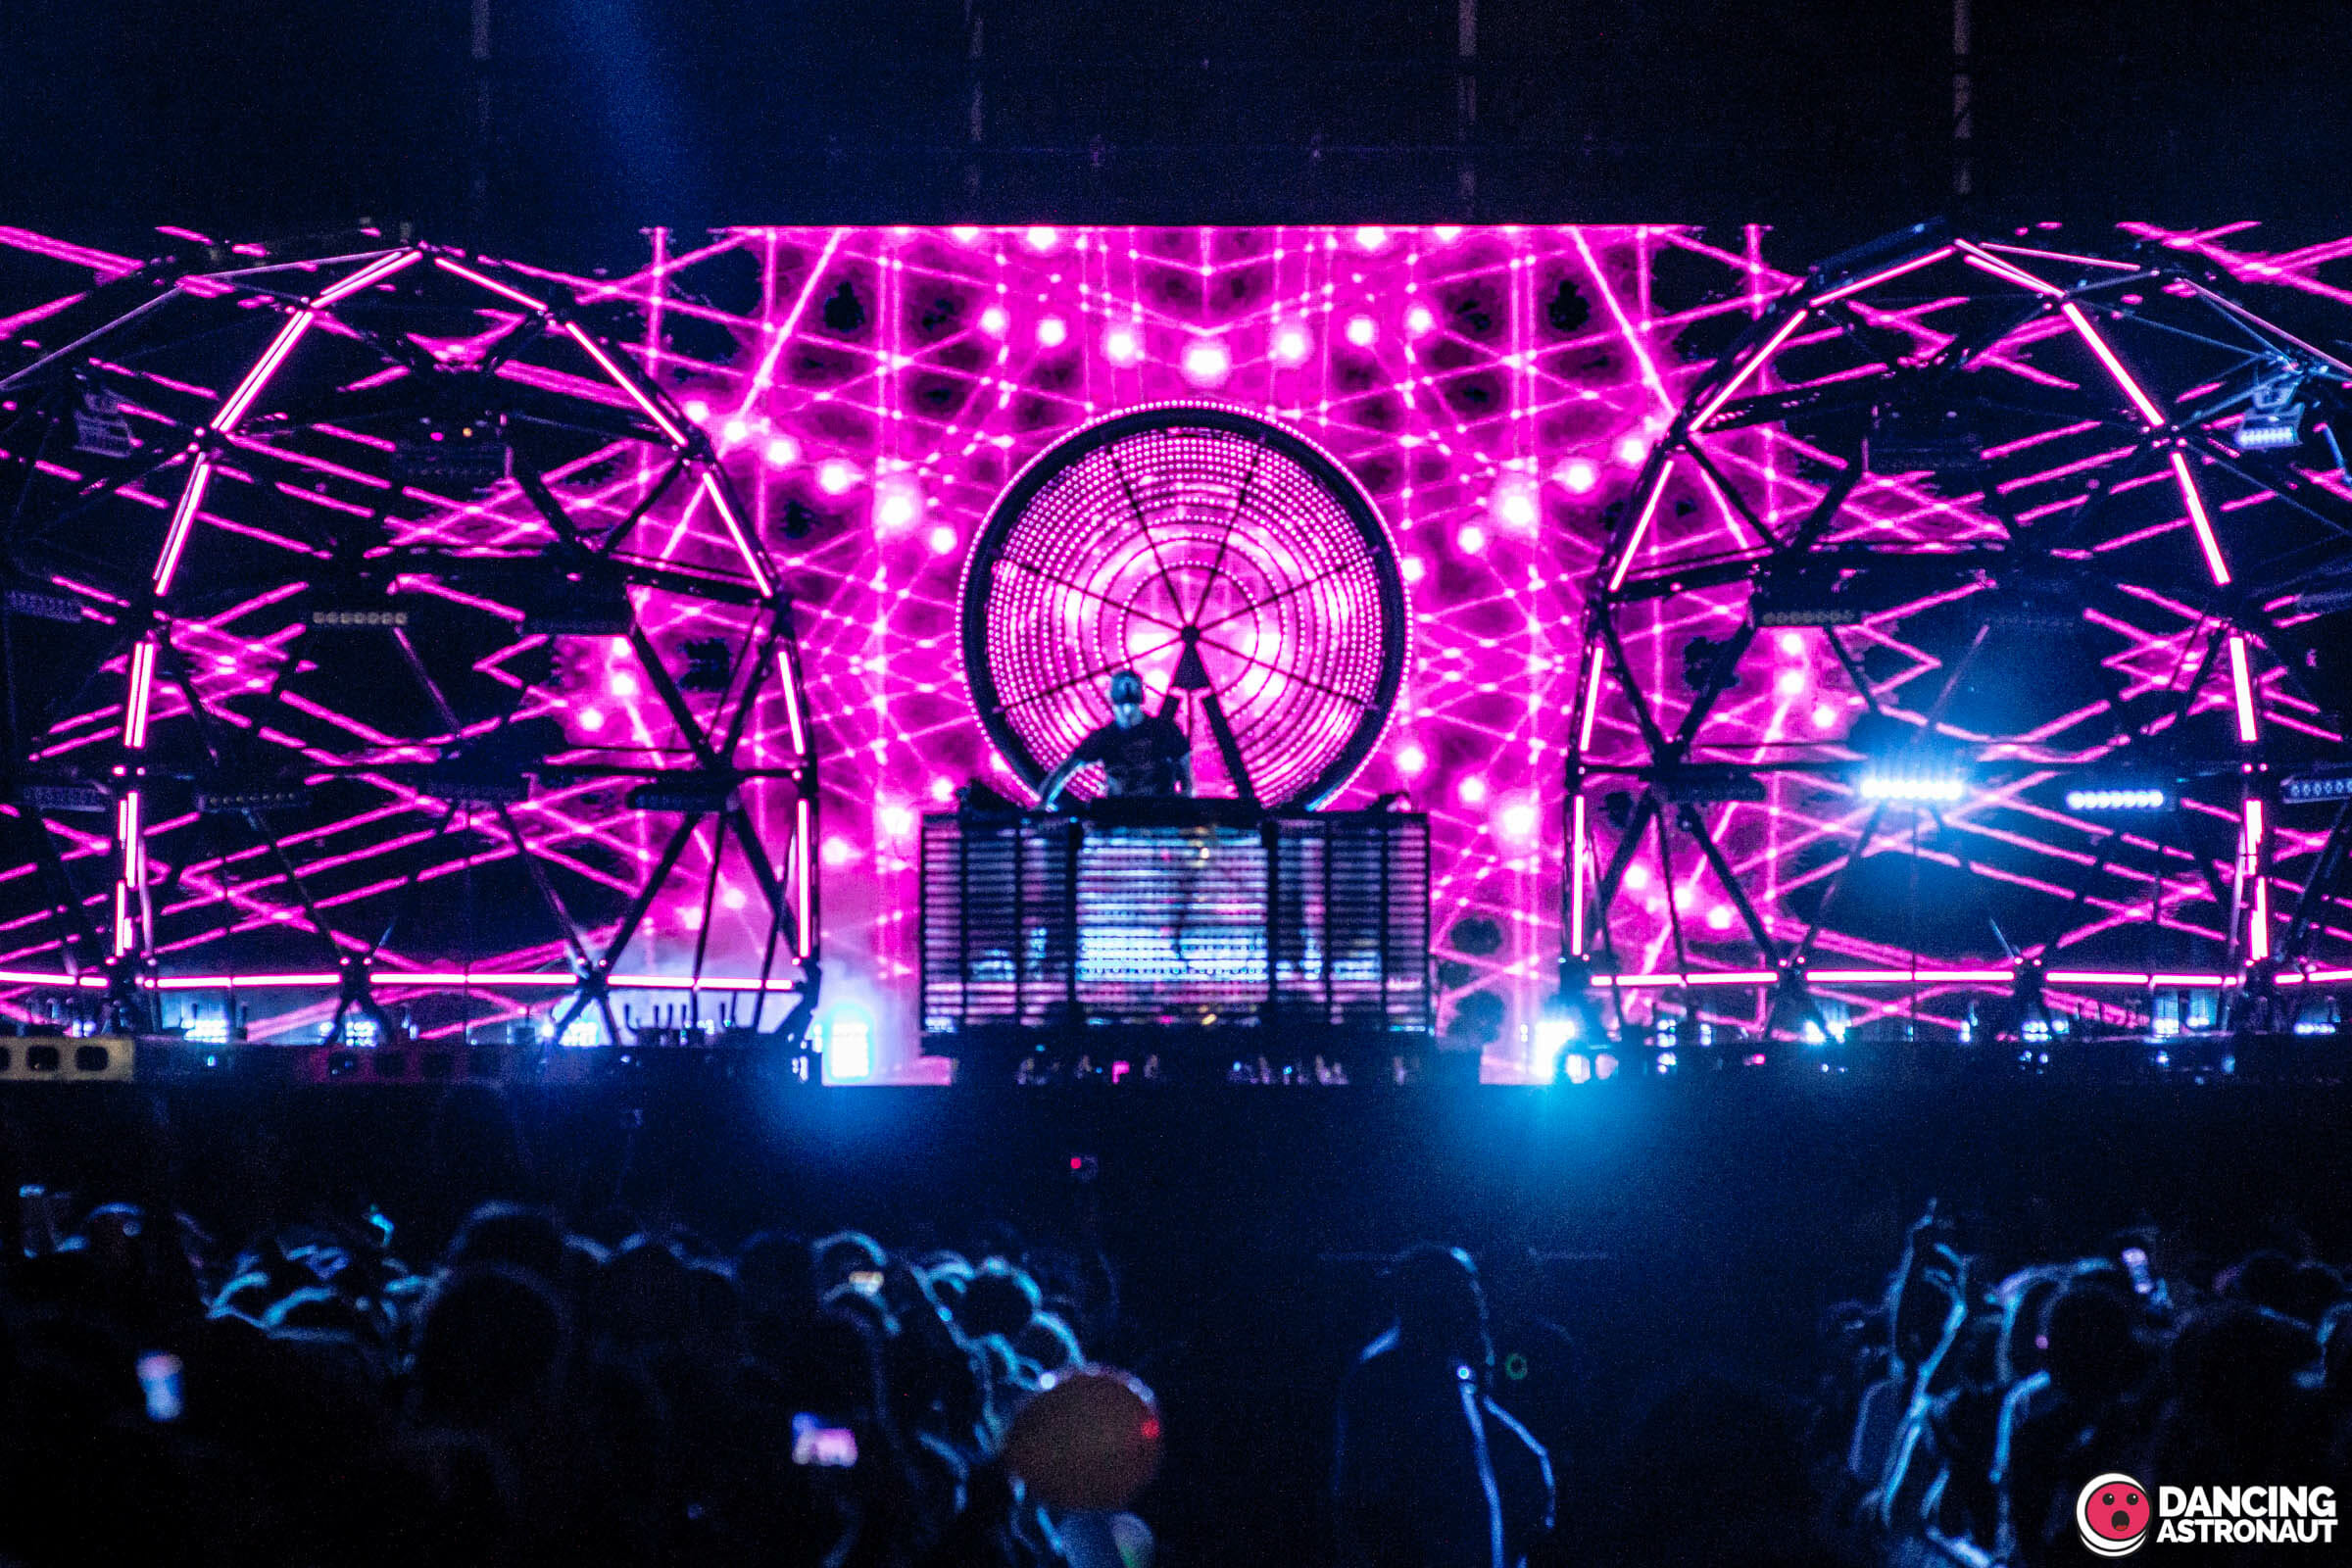 deadmau5 teases new track, 'Sick Days'Deadmau5 Governors Ball 2015 Dancing Astronaut Andrew Spada 17